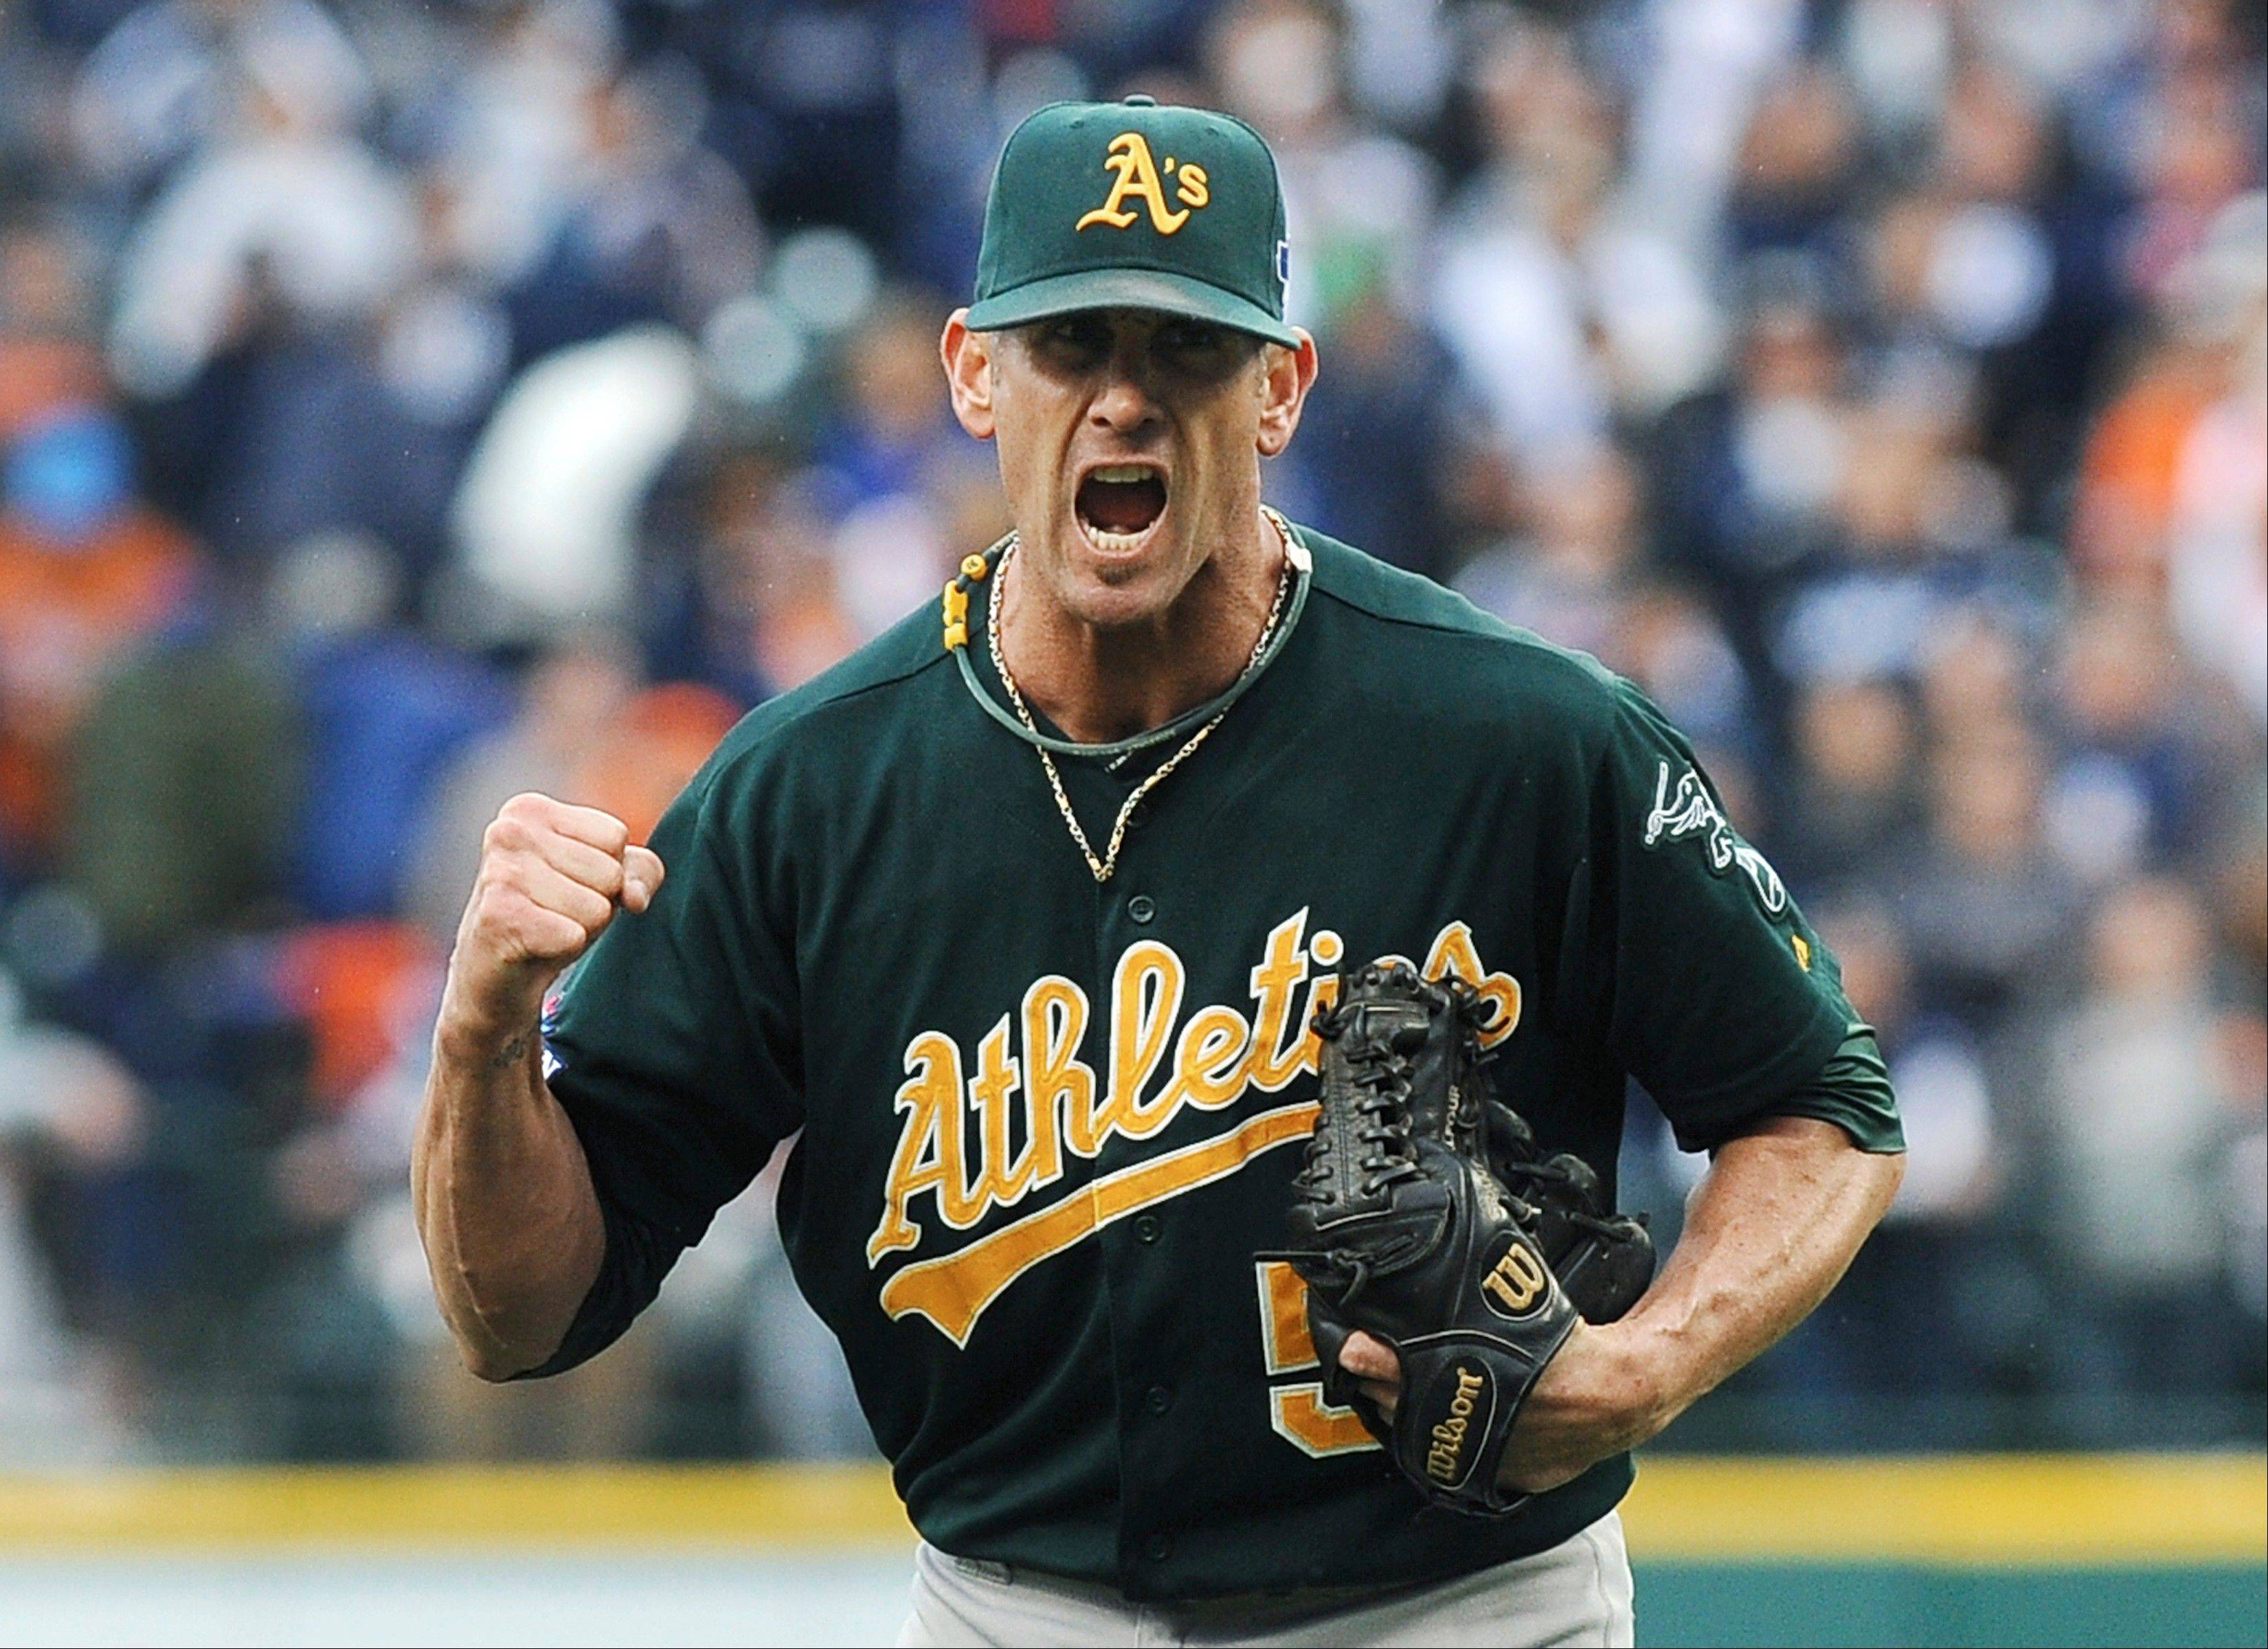 Athletics relief pitcher Grant Balfour clenches his fist after the final out in Game 3 of an American League Division Series against the Tigers in Detroit.